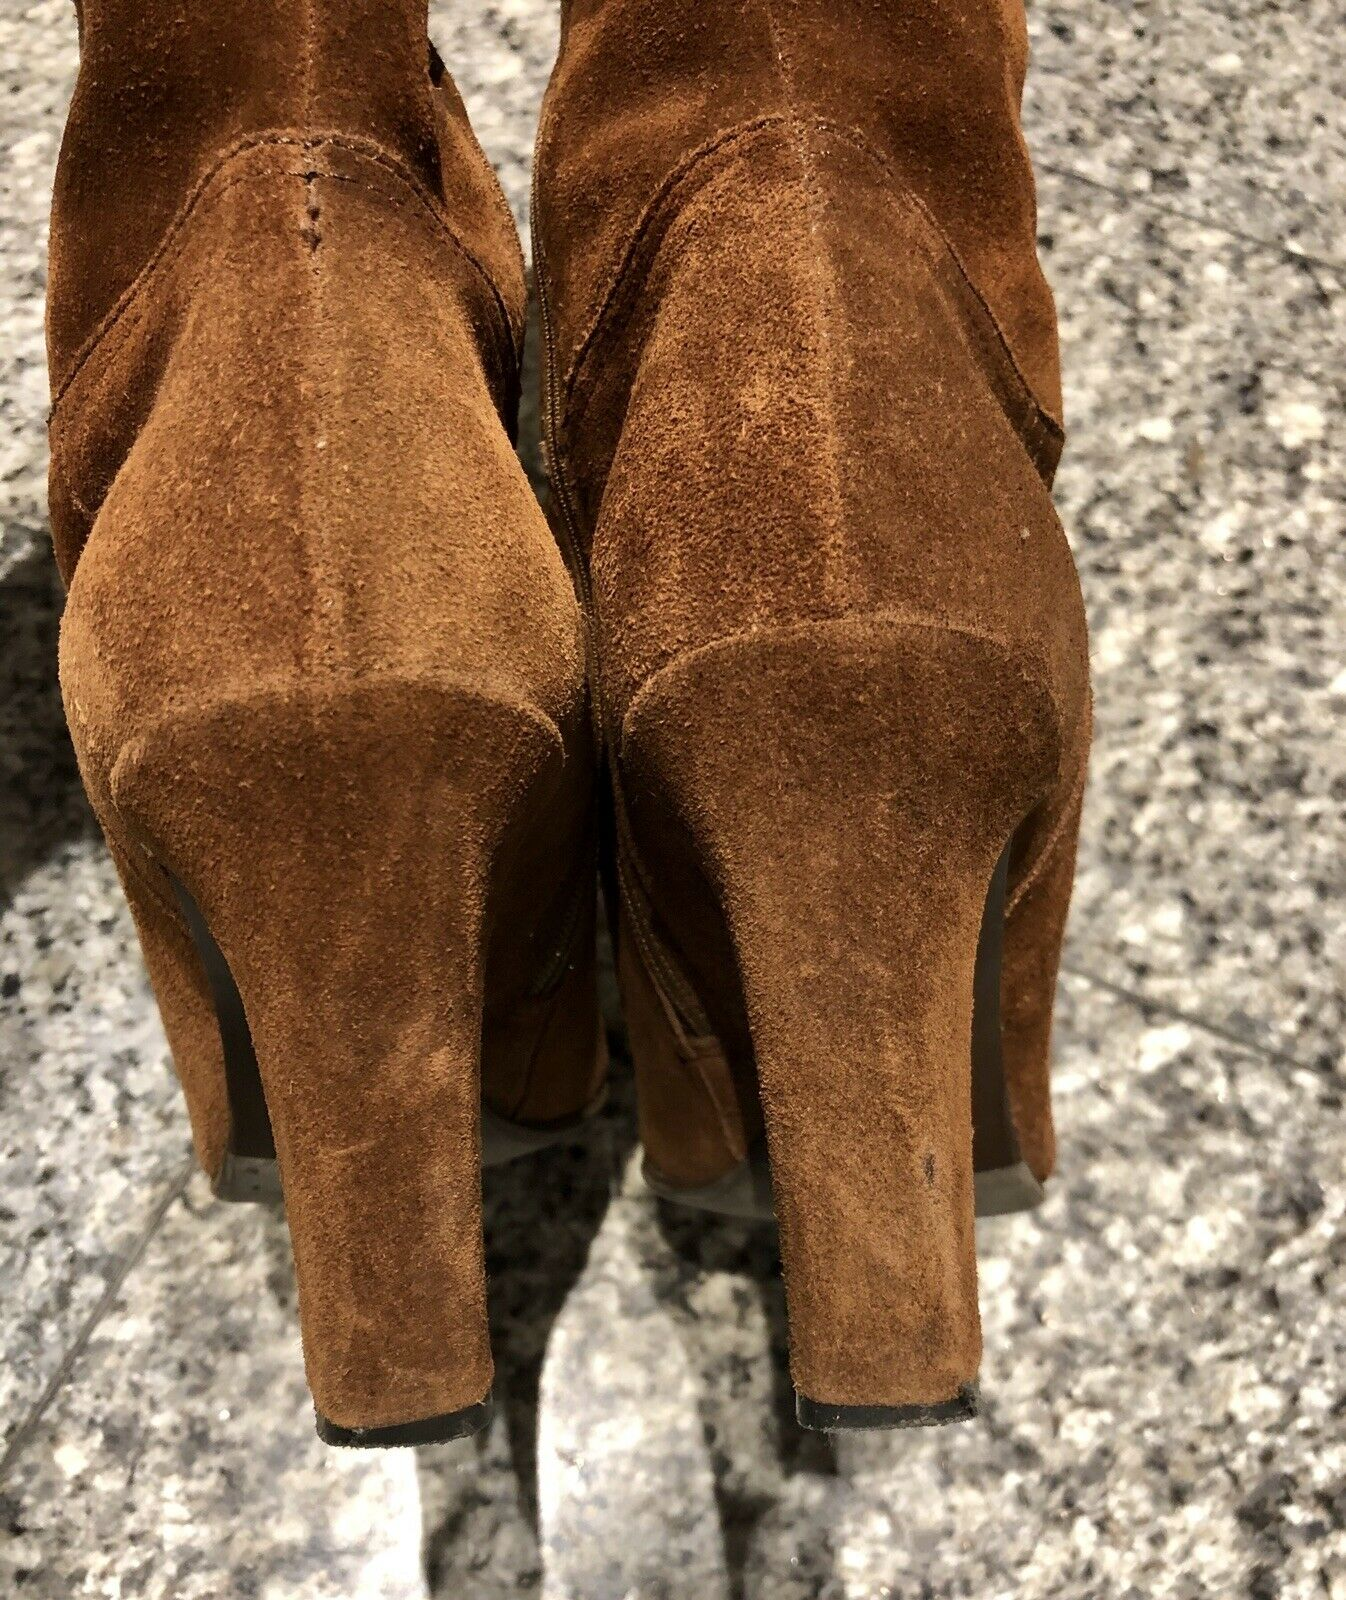 MIU MIU by PRADA marron Suede Embroiderouge Embroiderouge Embroiderouge Tall bottes 972937